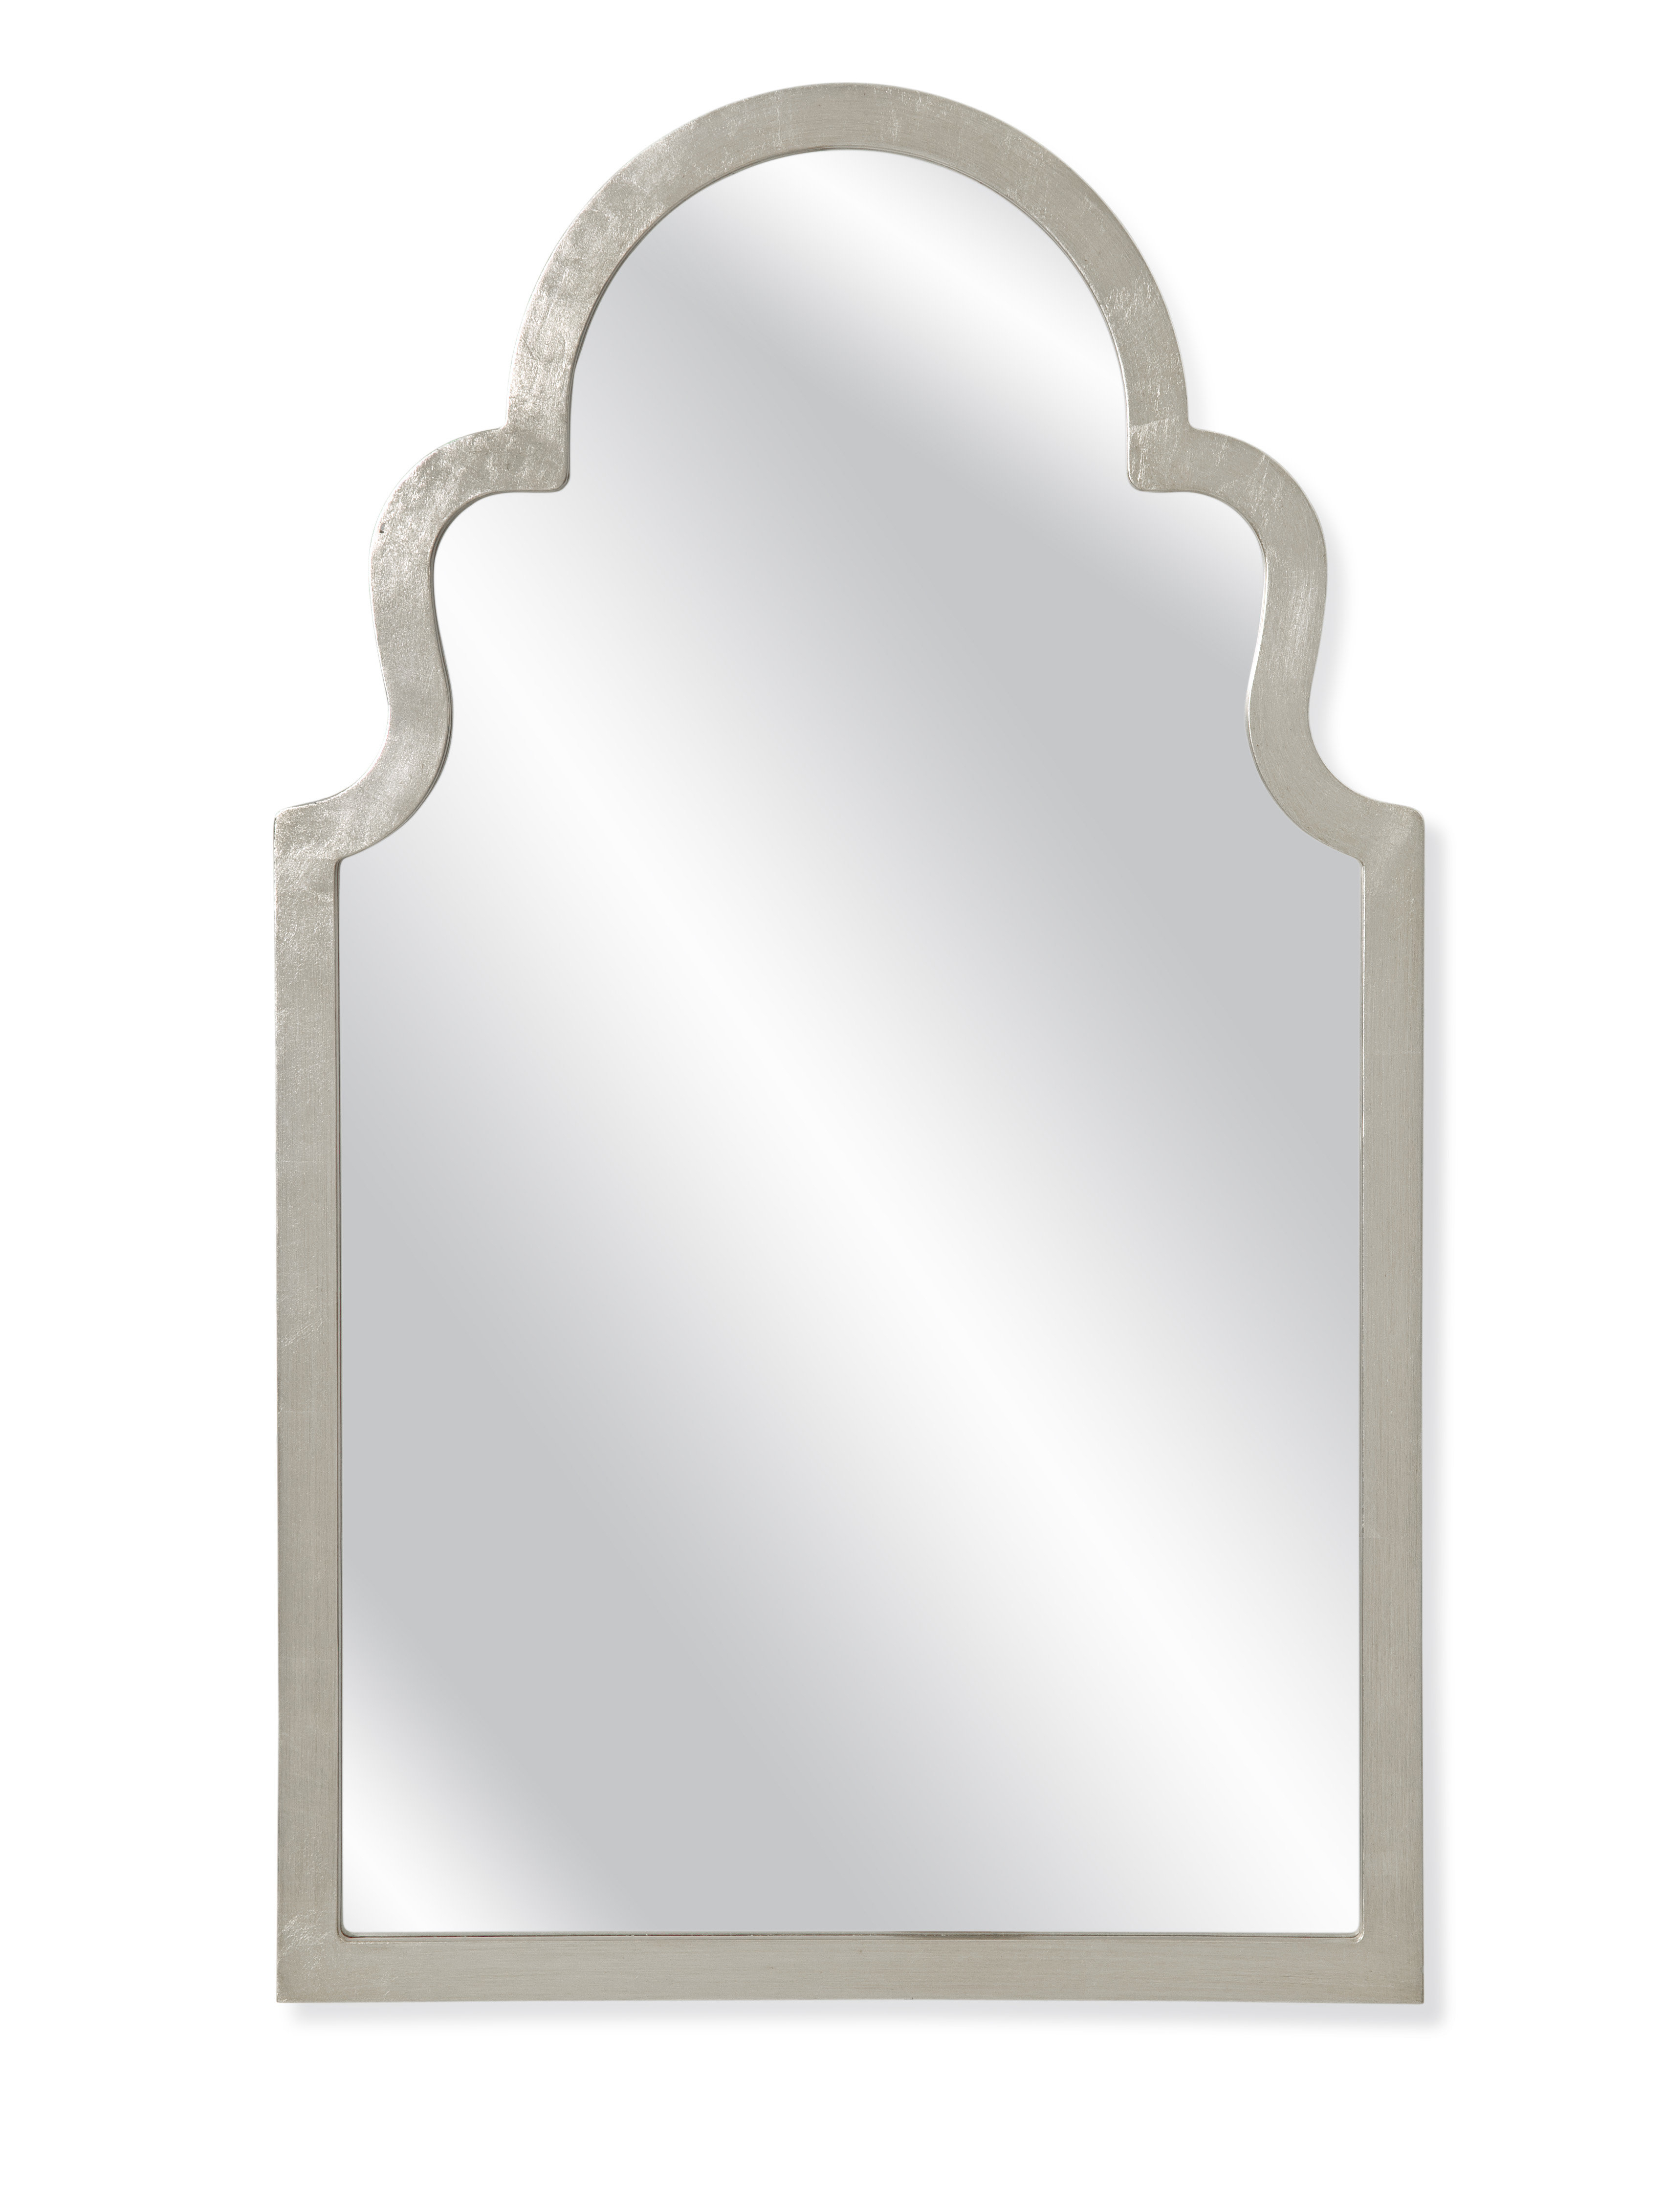 Featured Photo of Arch Top Vertical Wall Mirrors